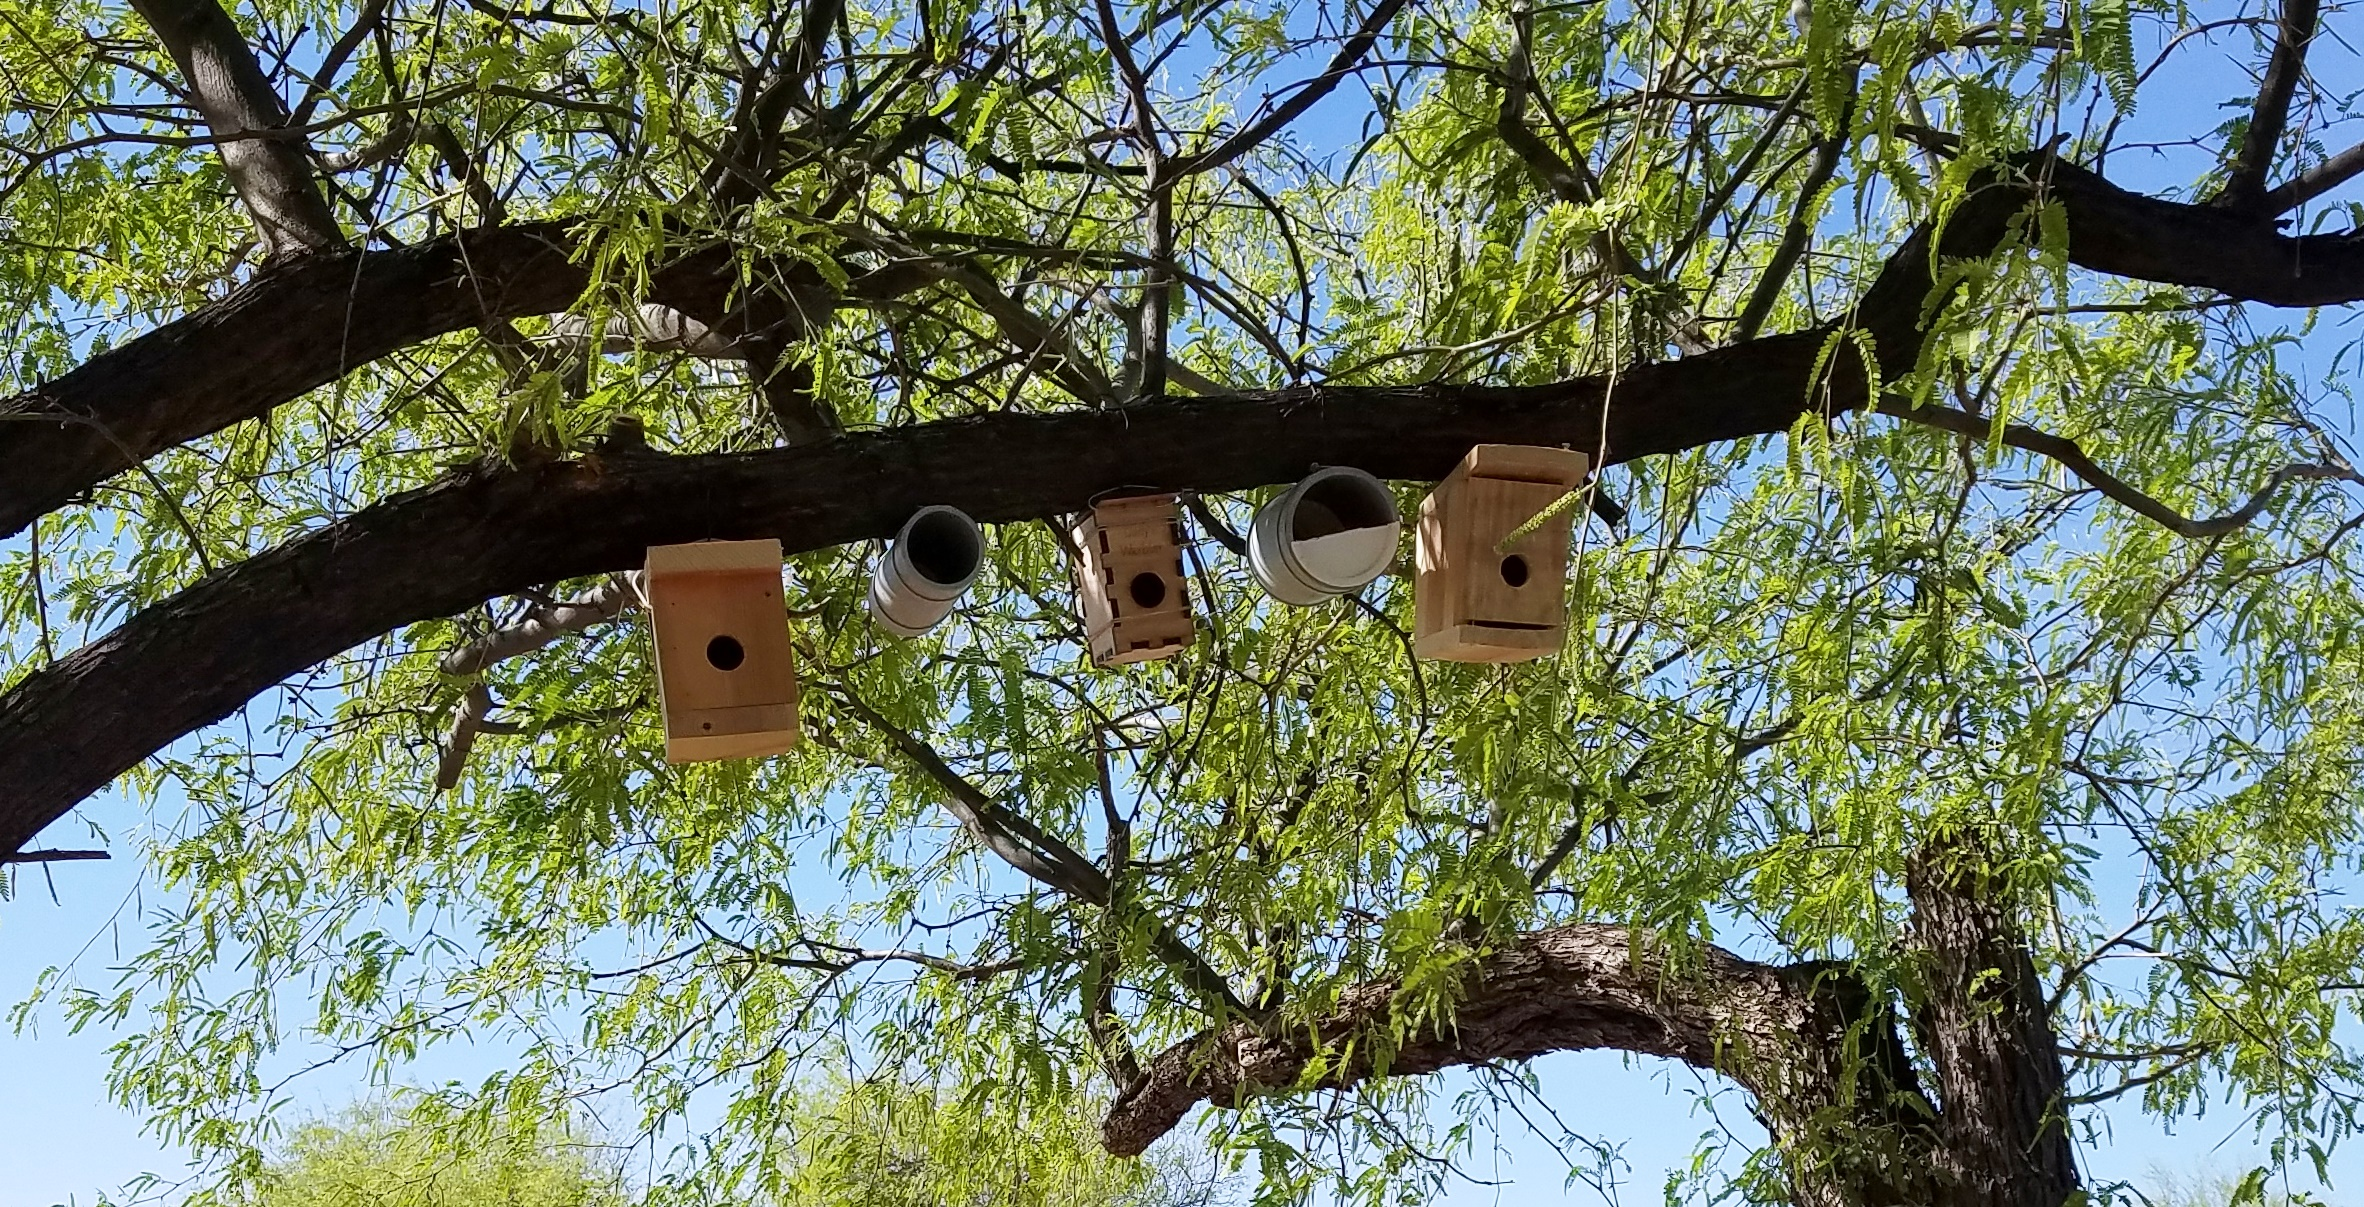 A row of wooden nest boxes are installed along a mesquite branch with bright green foliage in the background.